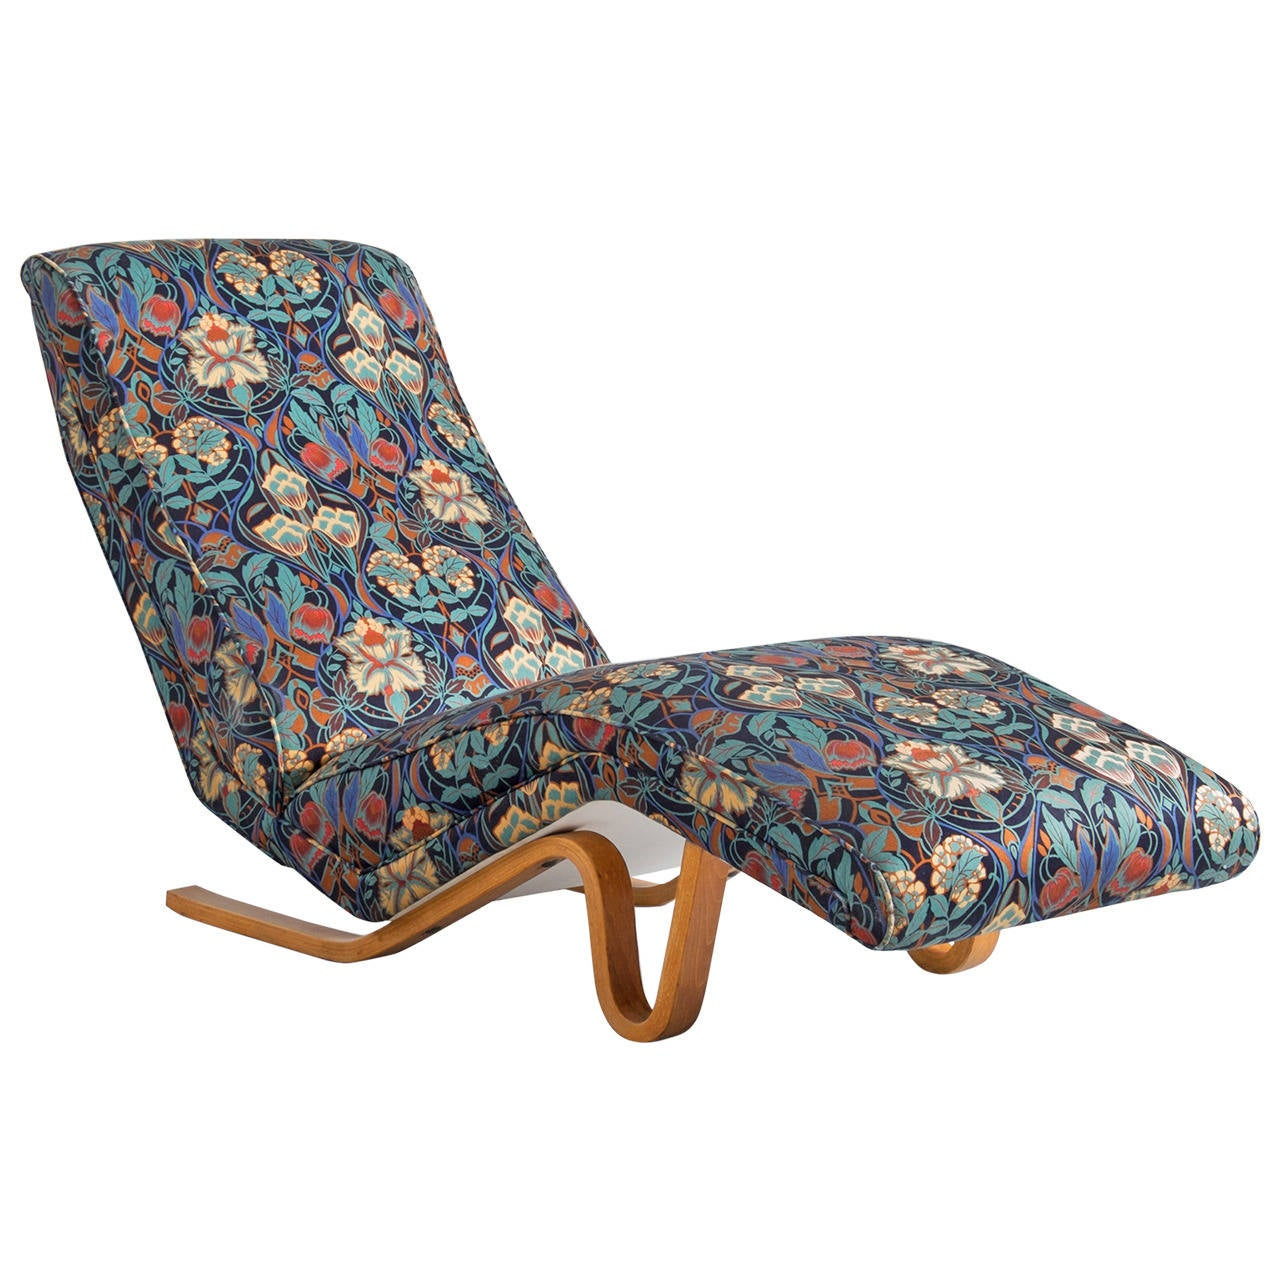 Chaise longue by andrew j milne london 1950s at 1stdibs for Chaise longue london